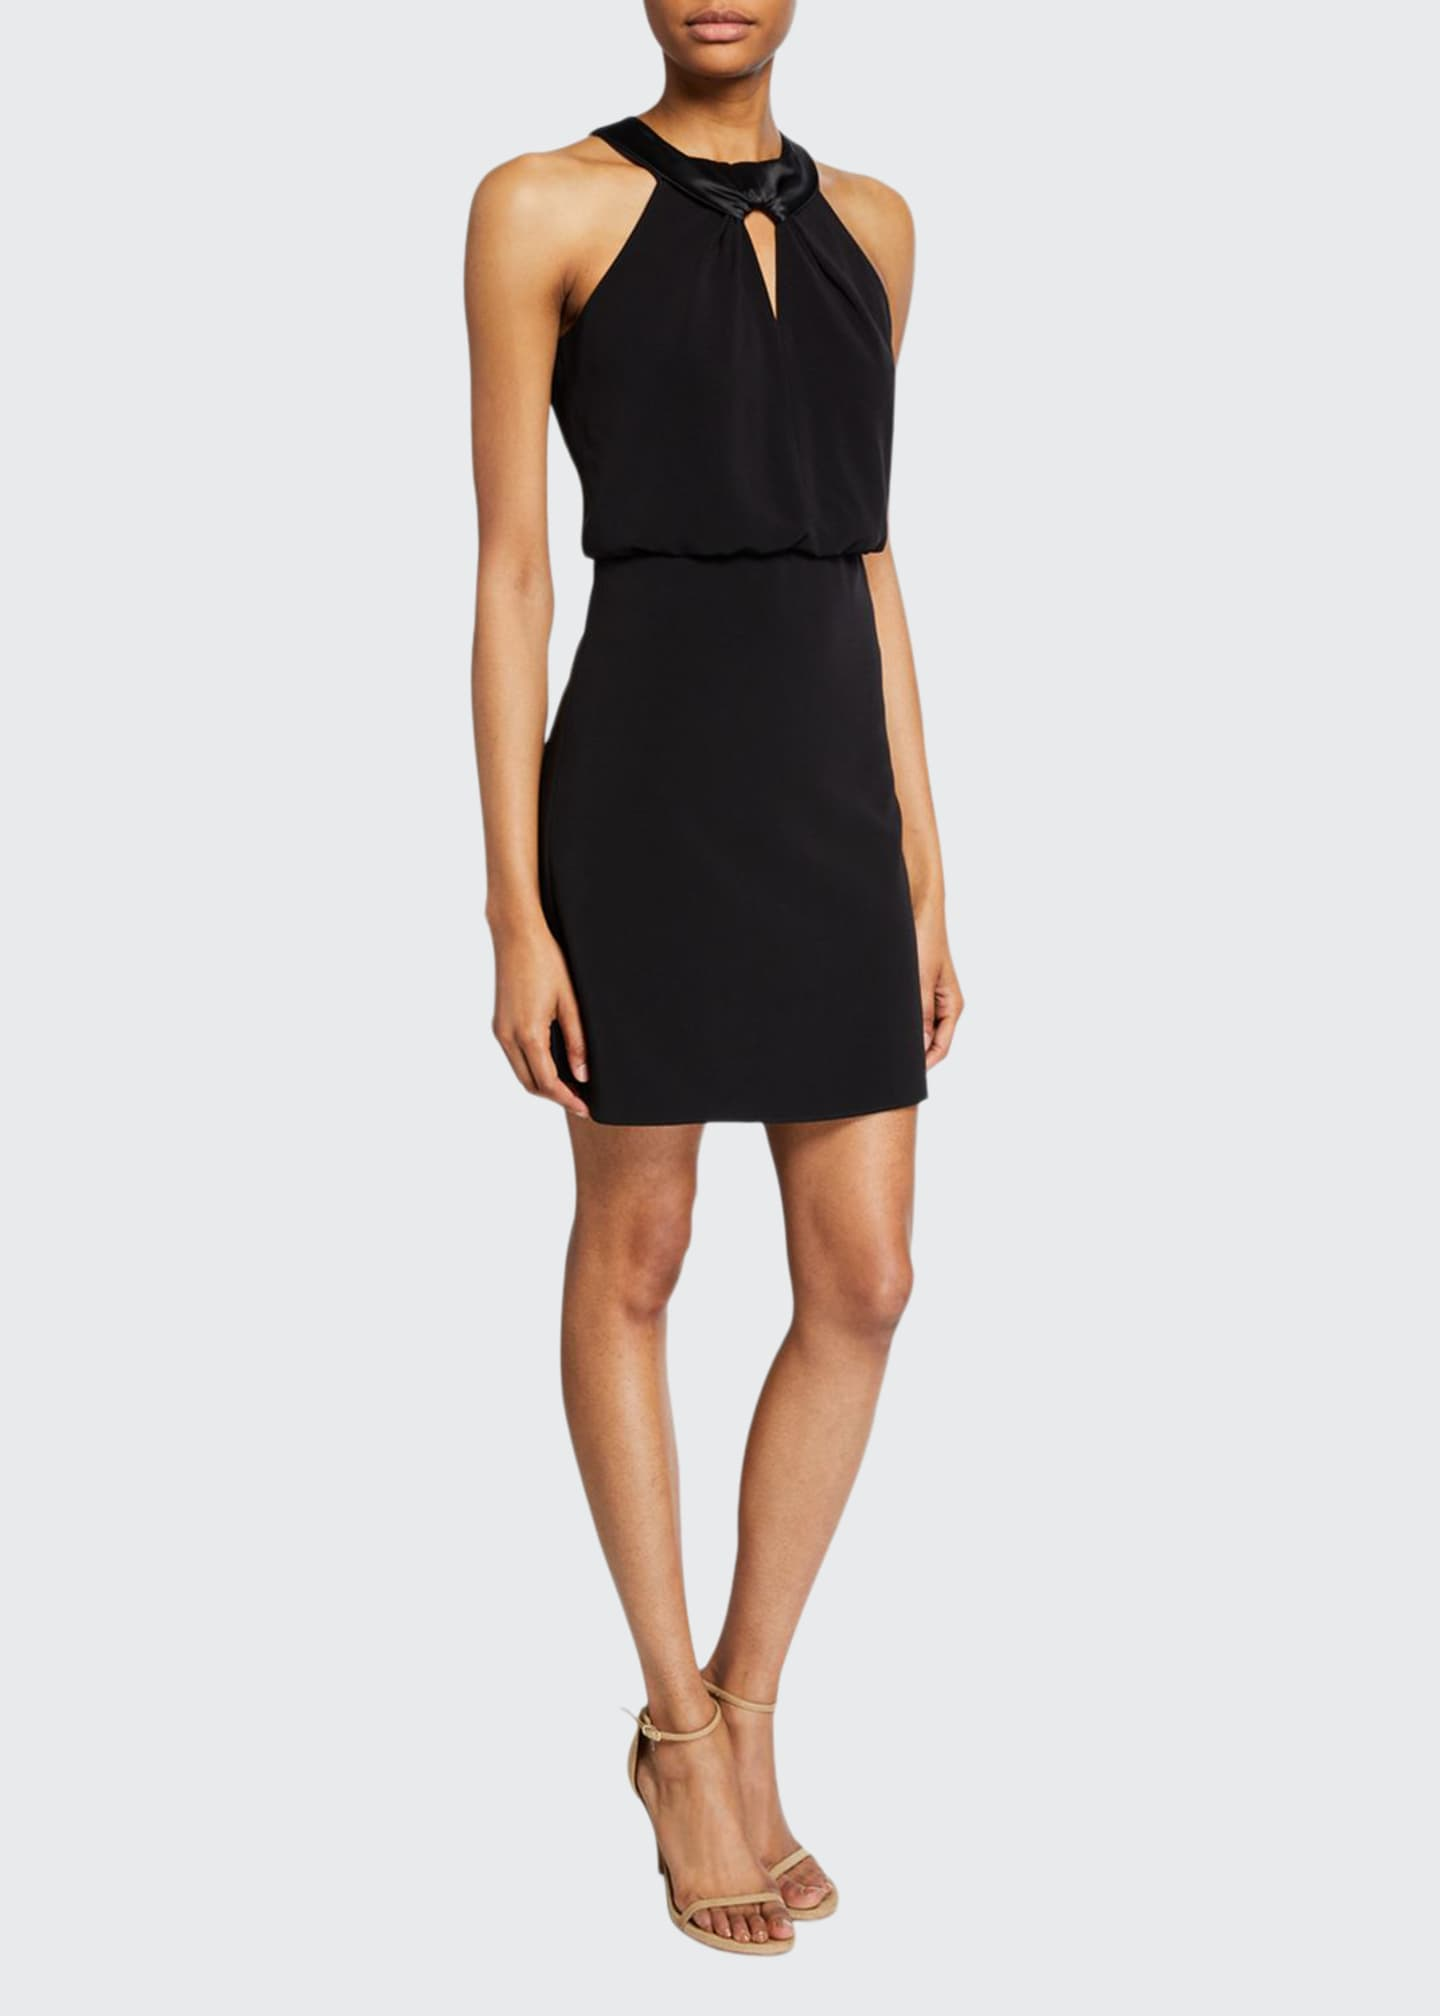 Halston Satin Neck Crepe Halter Dress